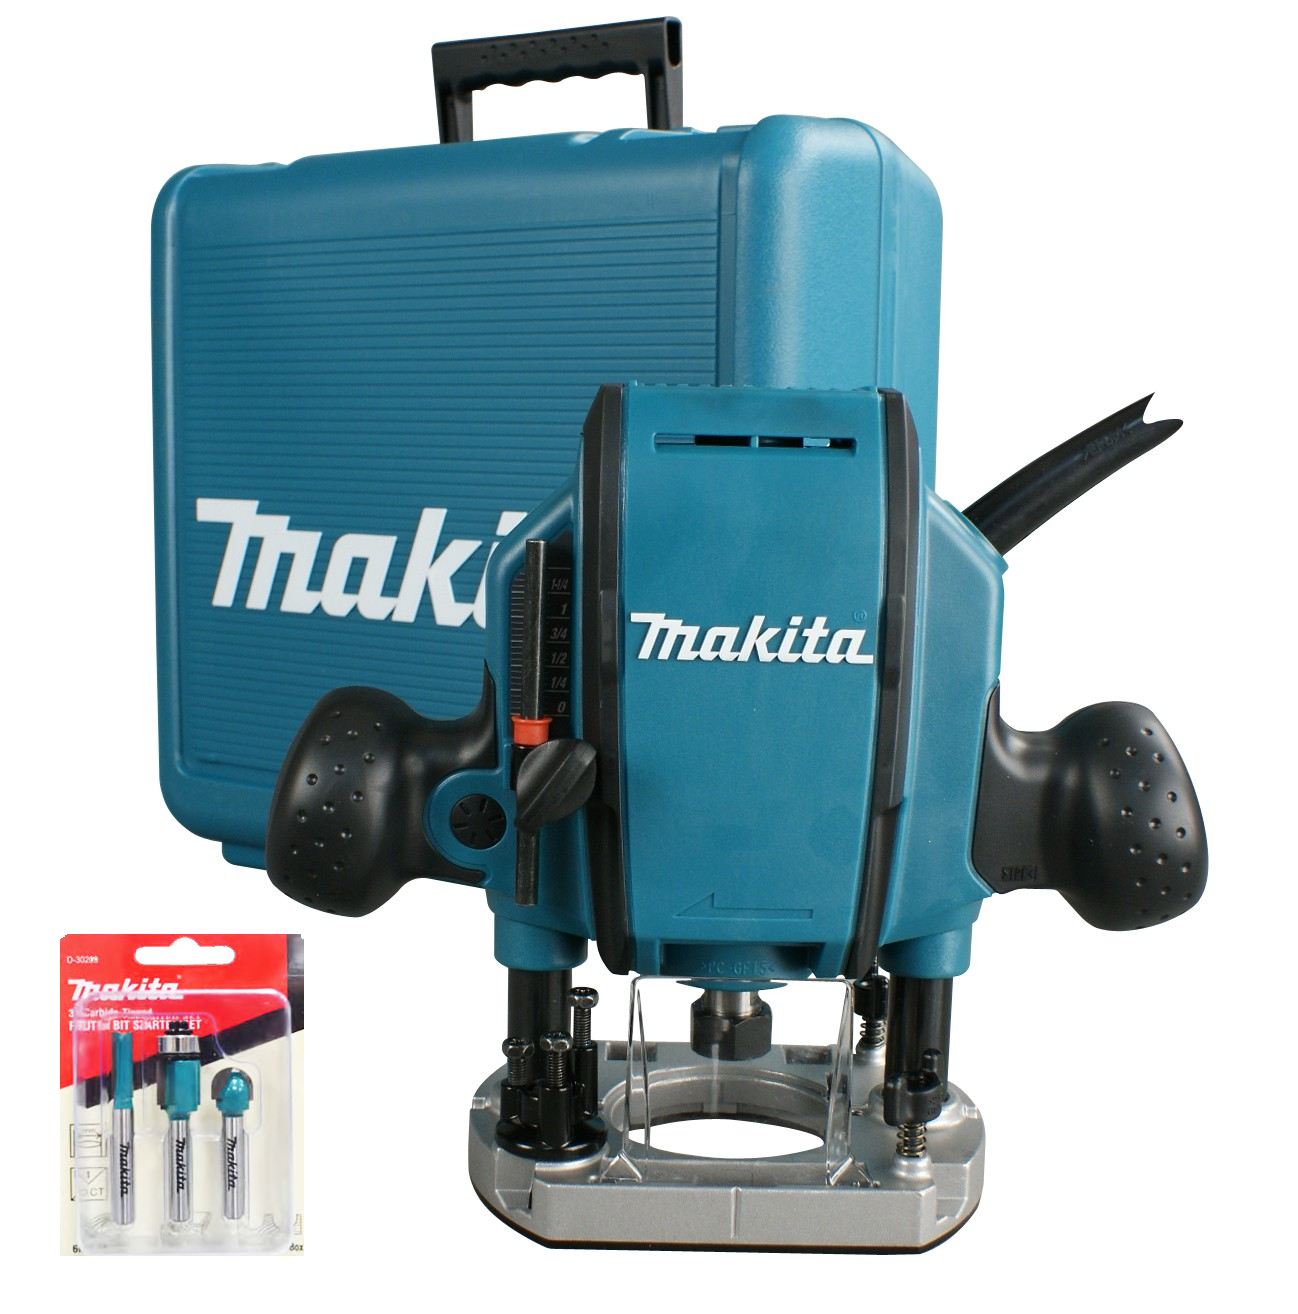 Makita Rp0900x 1 4 Plunge Router With Straight Guide